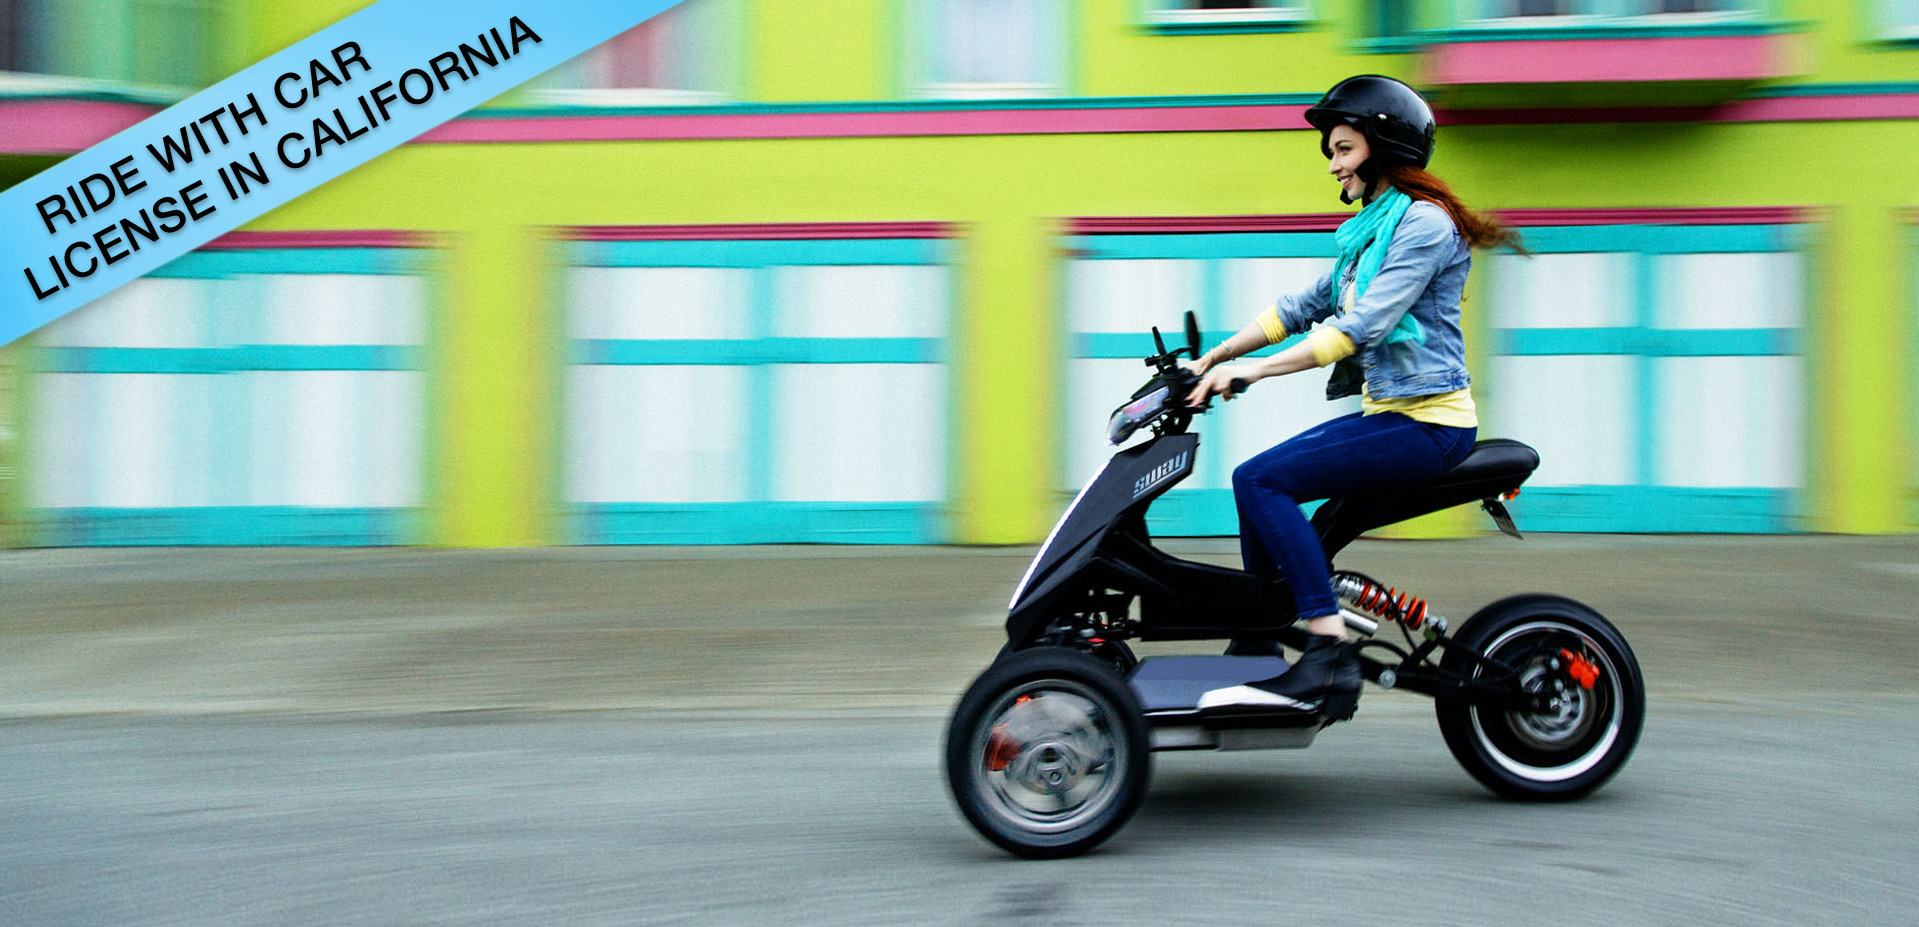 Motor scooter license requirements california for Do you need a license for a motorized bicycle